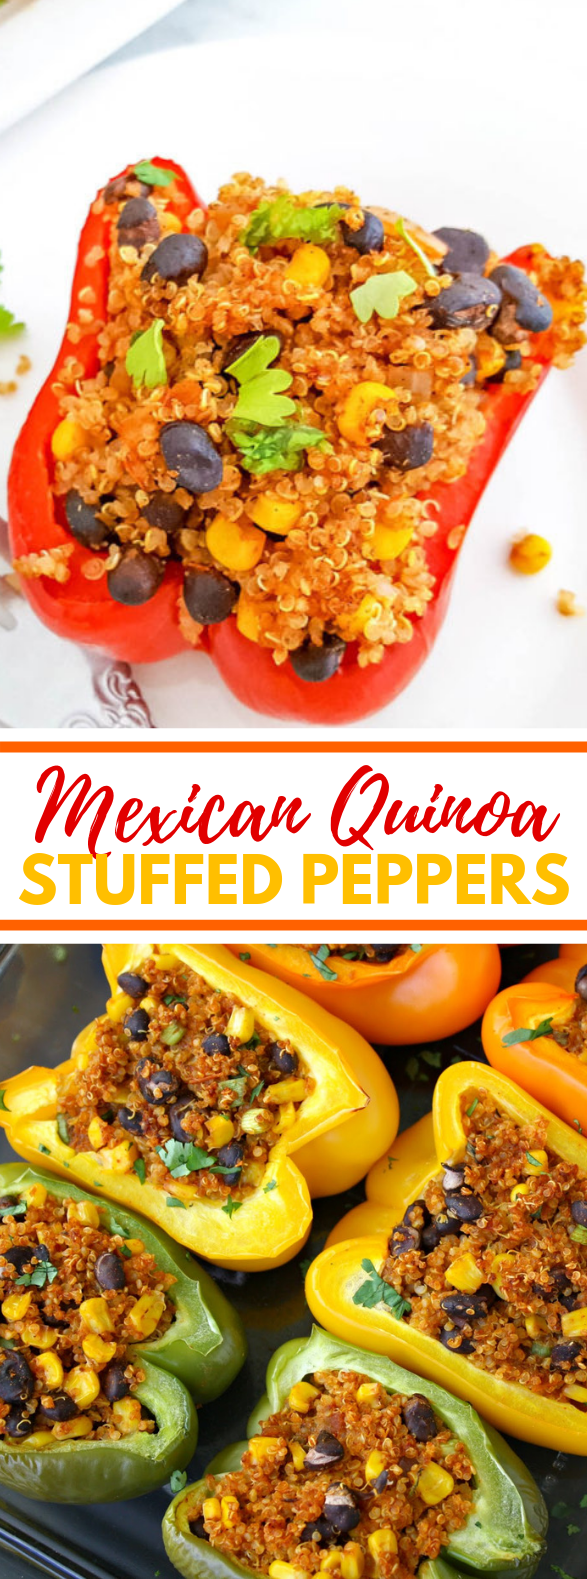 MEXICAN QUINOA STUFFED PEPPERS #vegetarian #mexicanfood